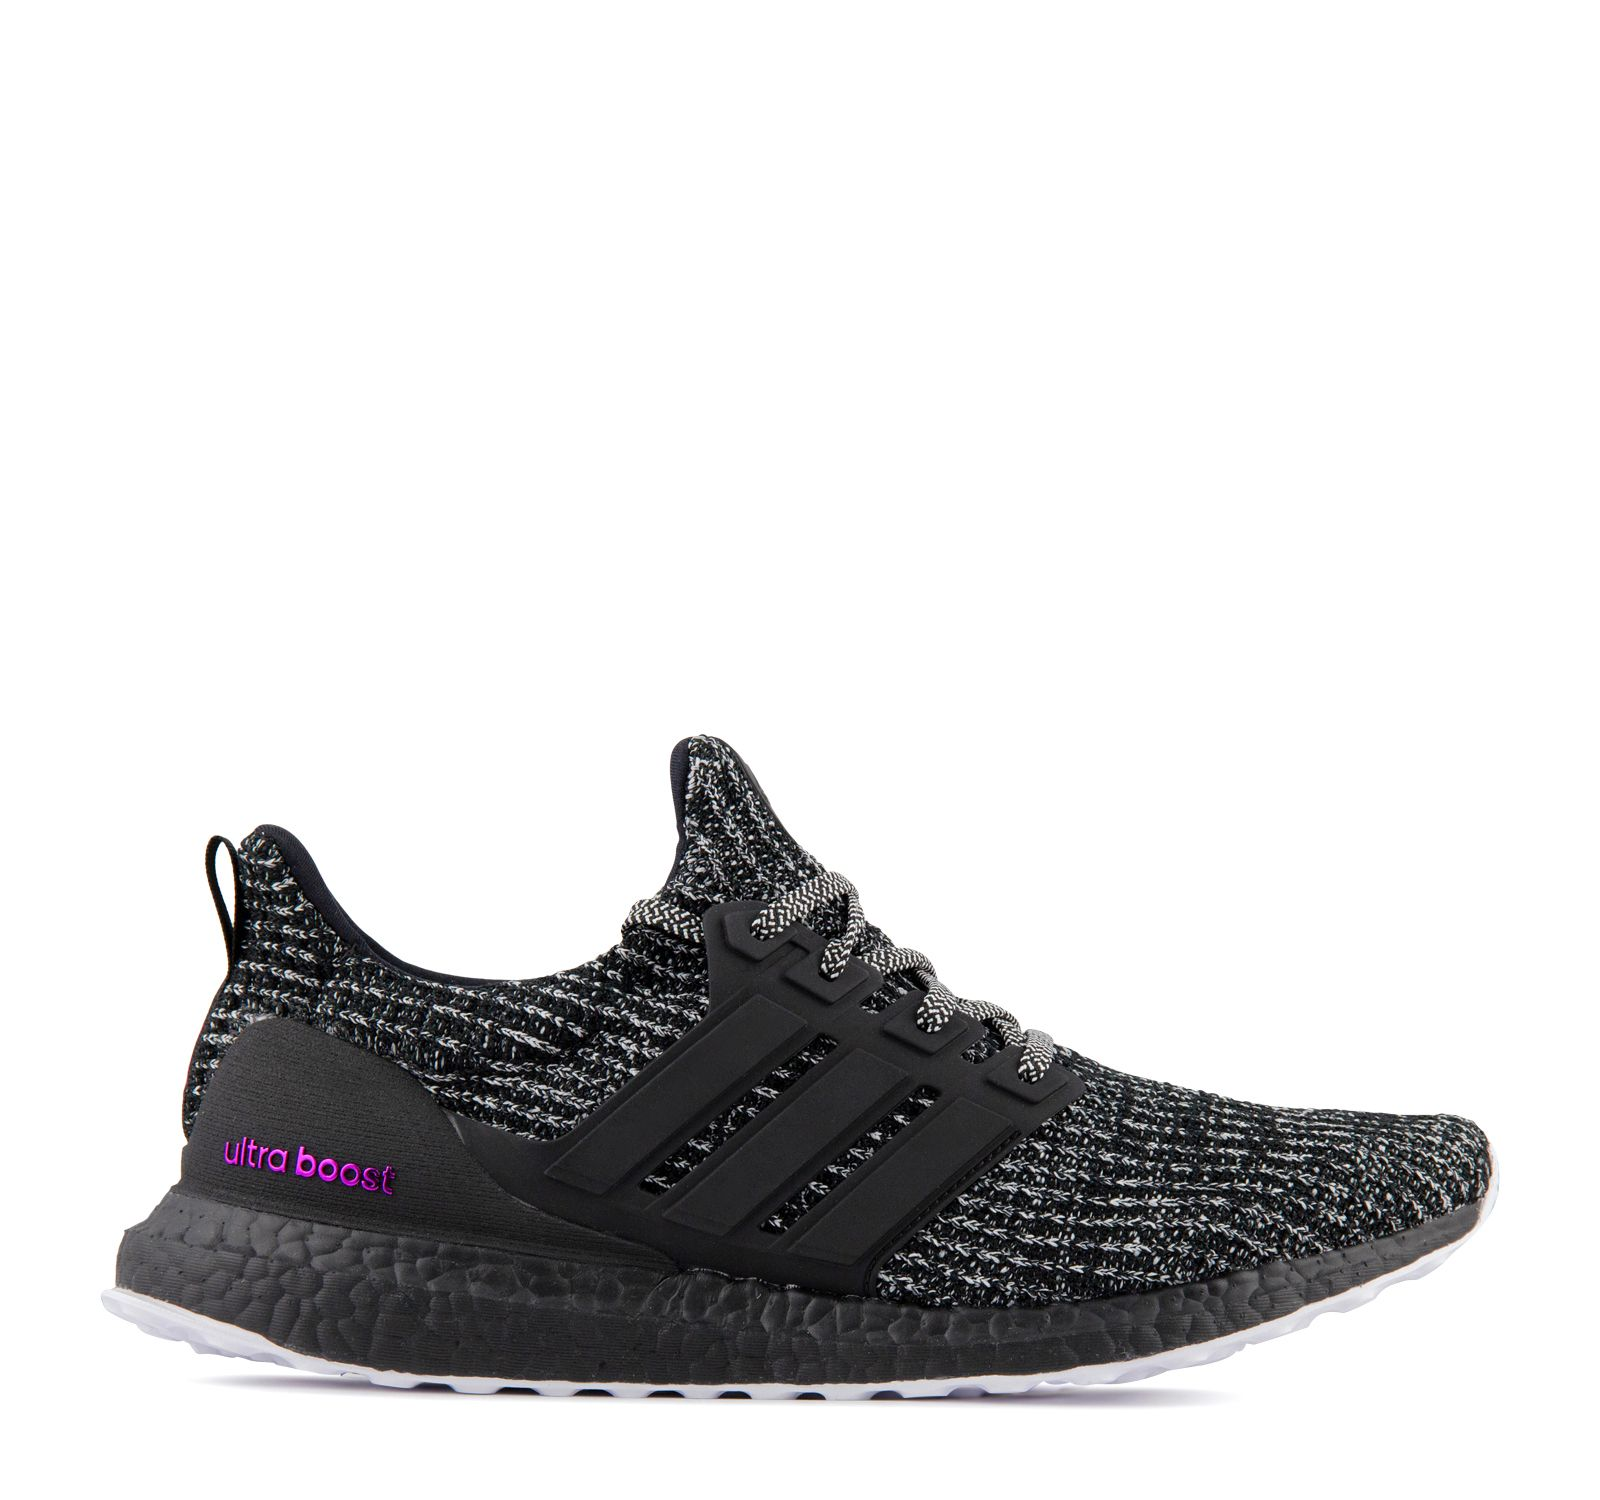 9f58c0f505624 Adidas UltraBOOST Breast Cancer Awareness BC0247 - Black